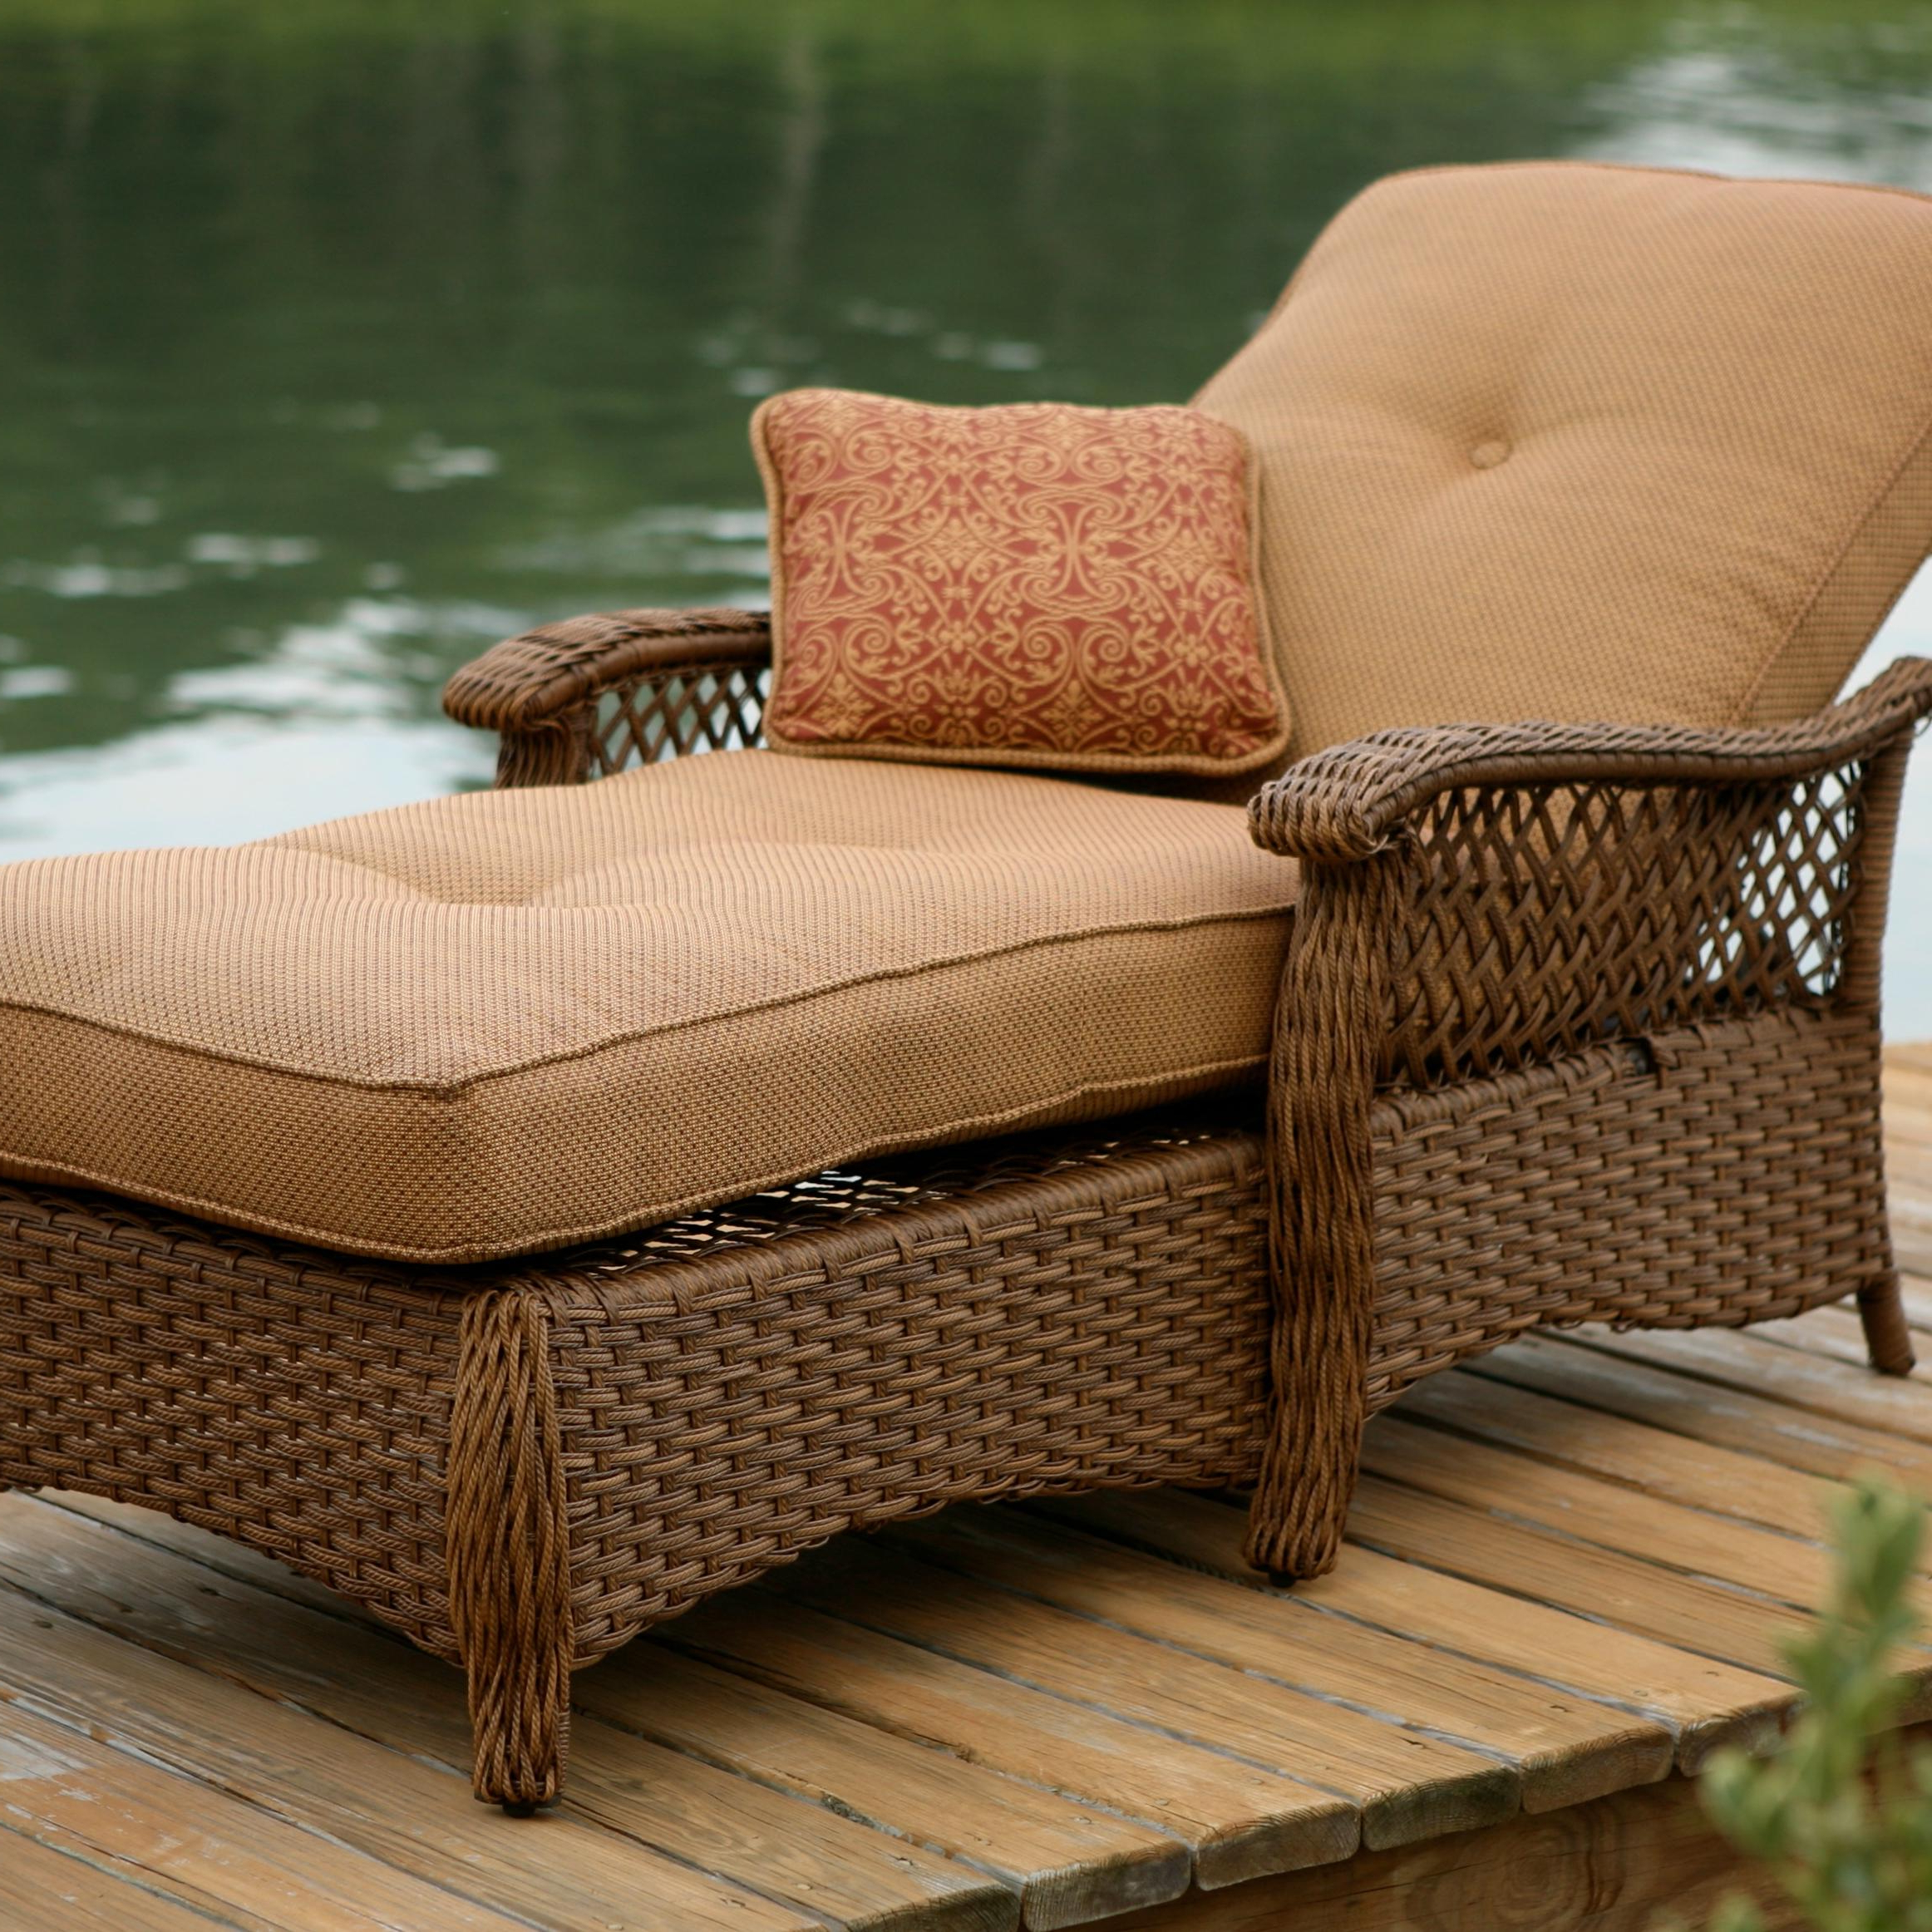 Agio Veranda–agio Outdoor Tan Woven Chaise Lounge Chair Inside Well Known Outdoor Wicker Chaise Lounge Chairs (View 10 of 25)